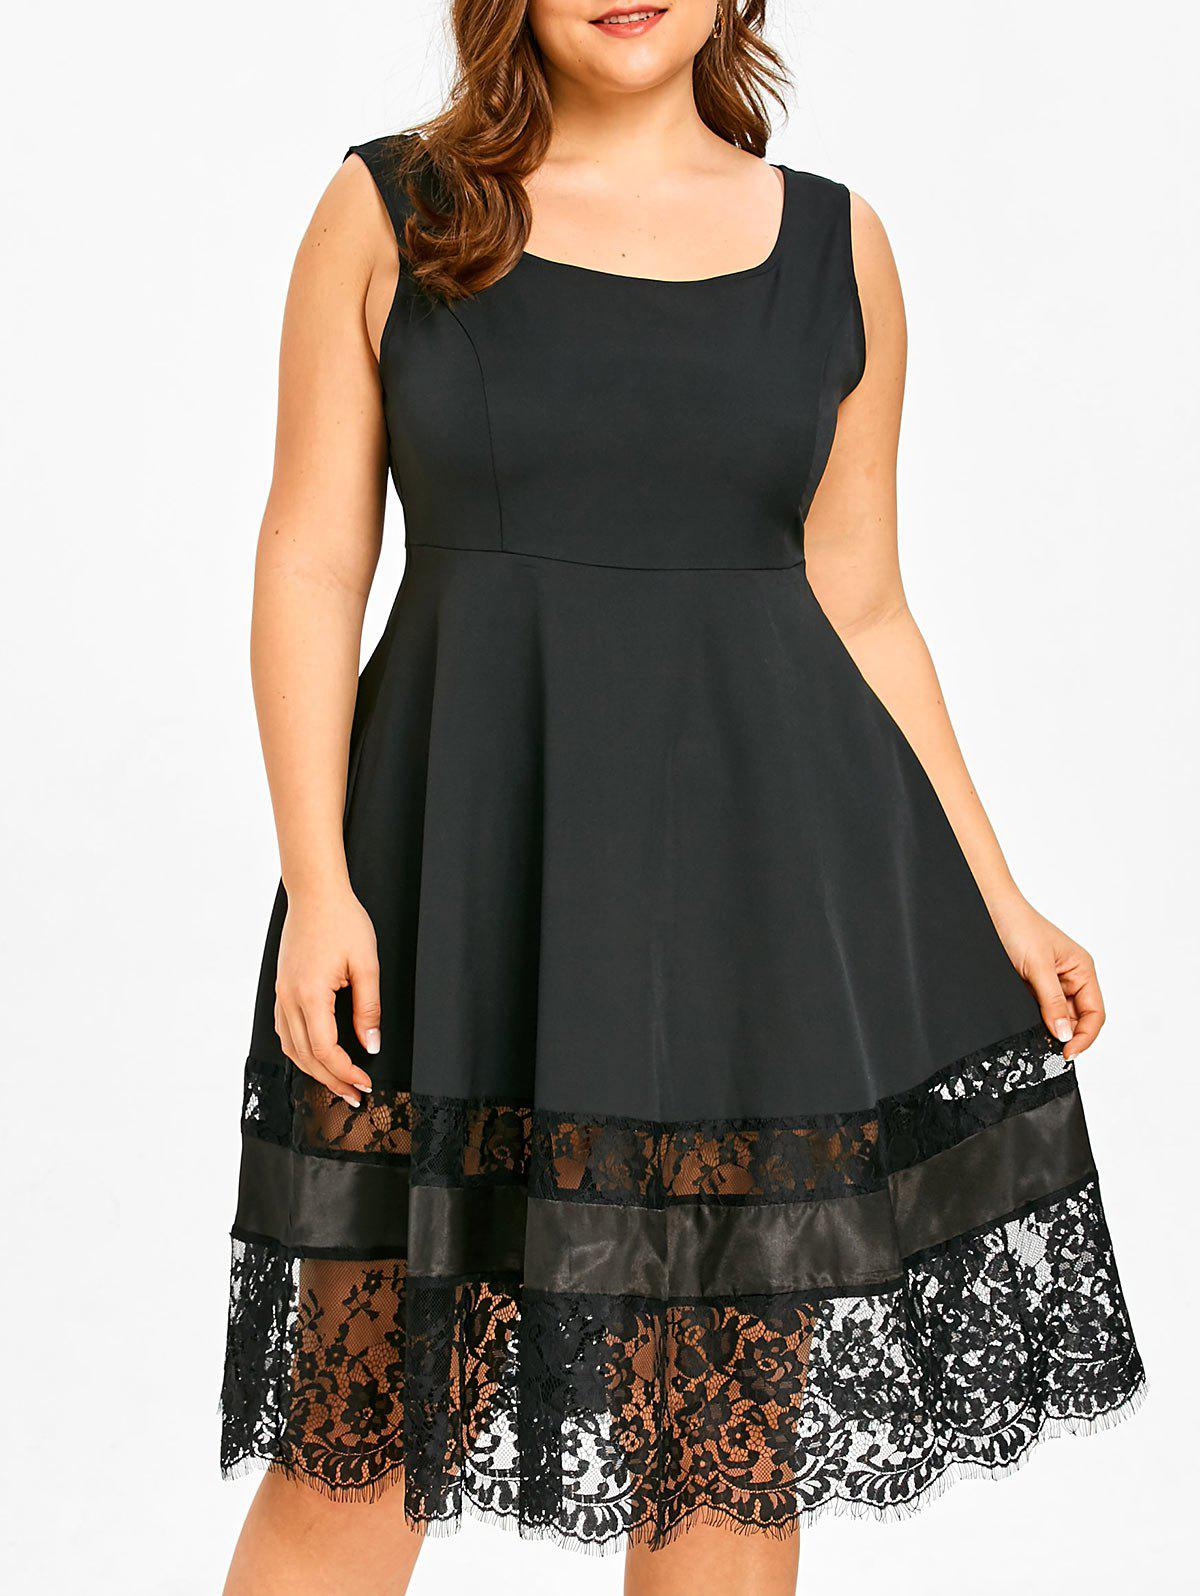 Hot Lace Trim Plus Size Sleeveless Flare Dress